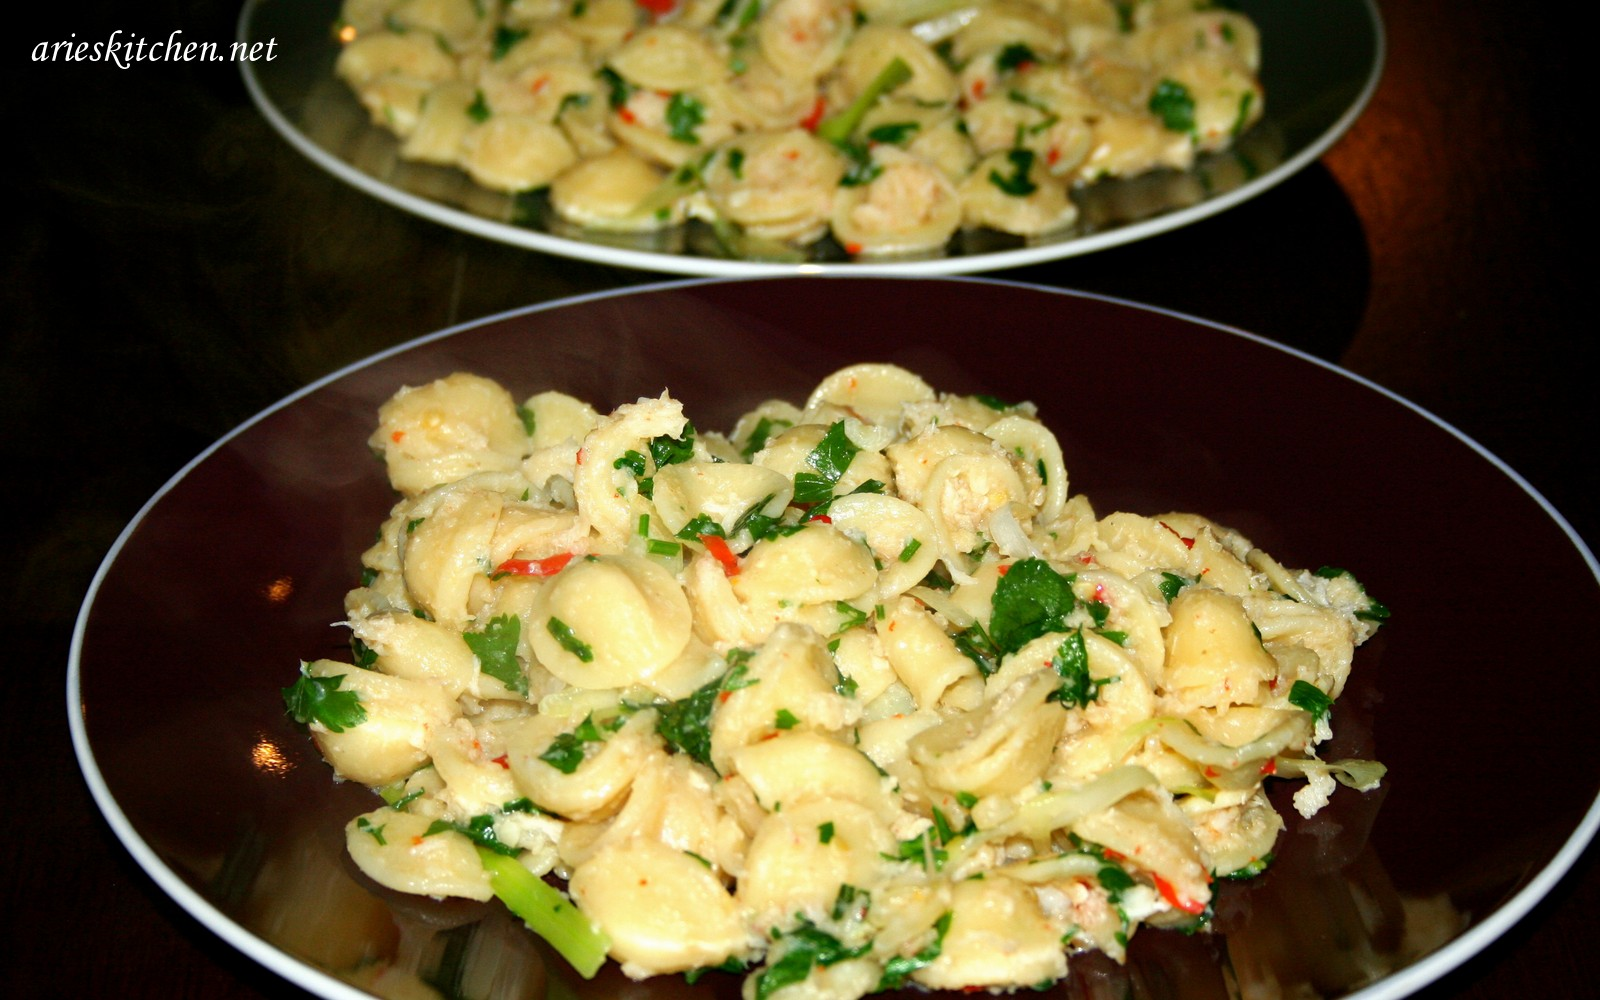 Pasta Crab Meat Recipes - Arie's Kitchen